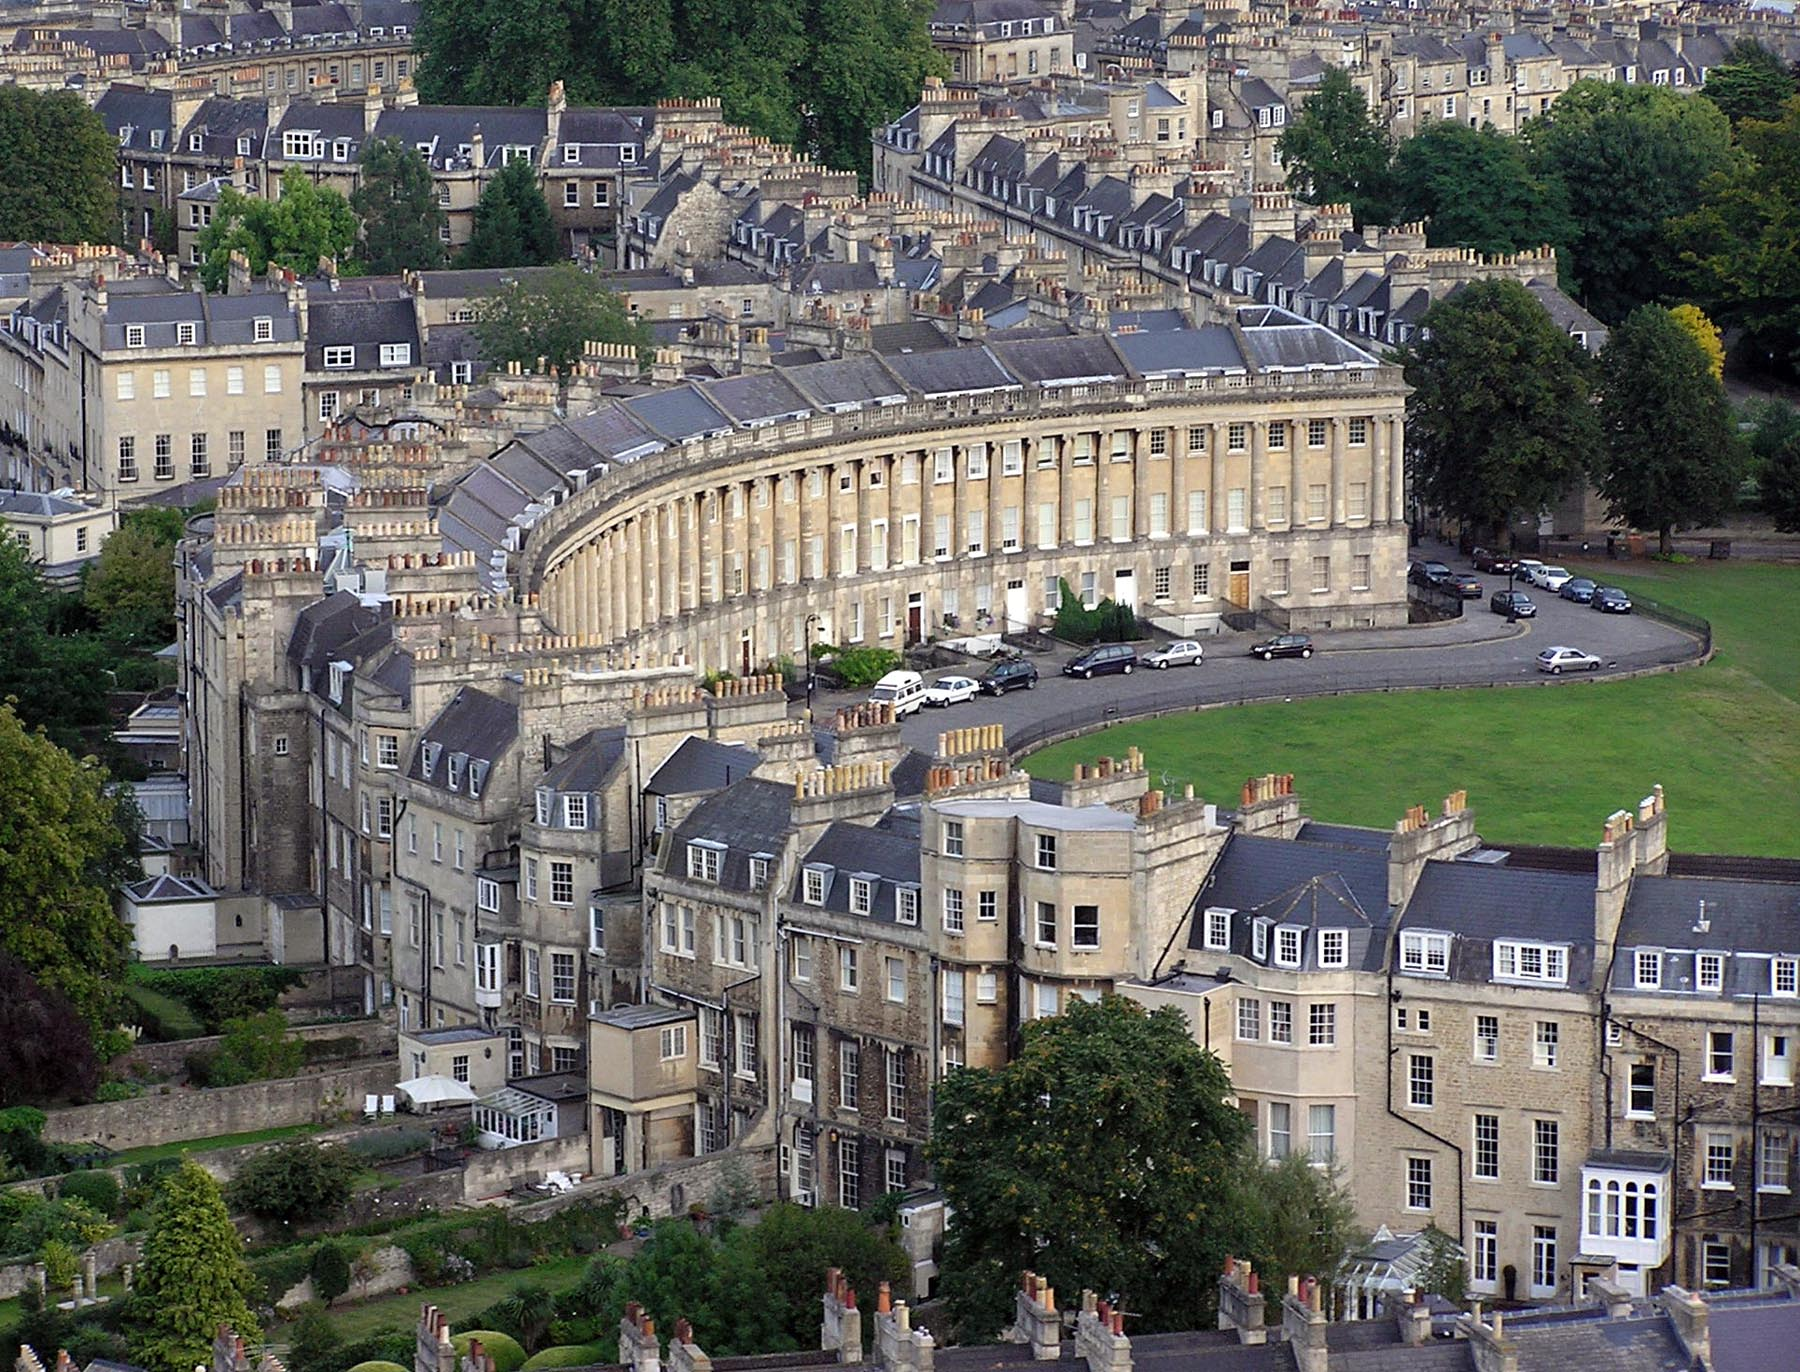 Interior Bath Images bath somerset wikipedia aerial view of a semicircular terrace houses with matching fronts but variety different